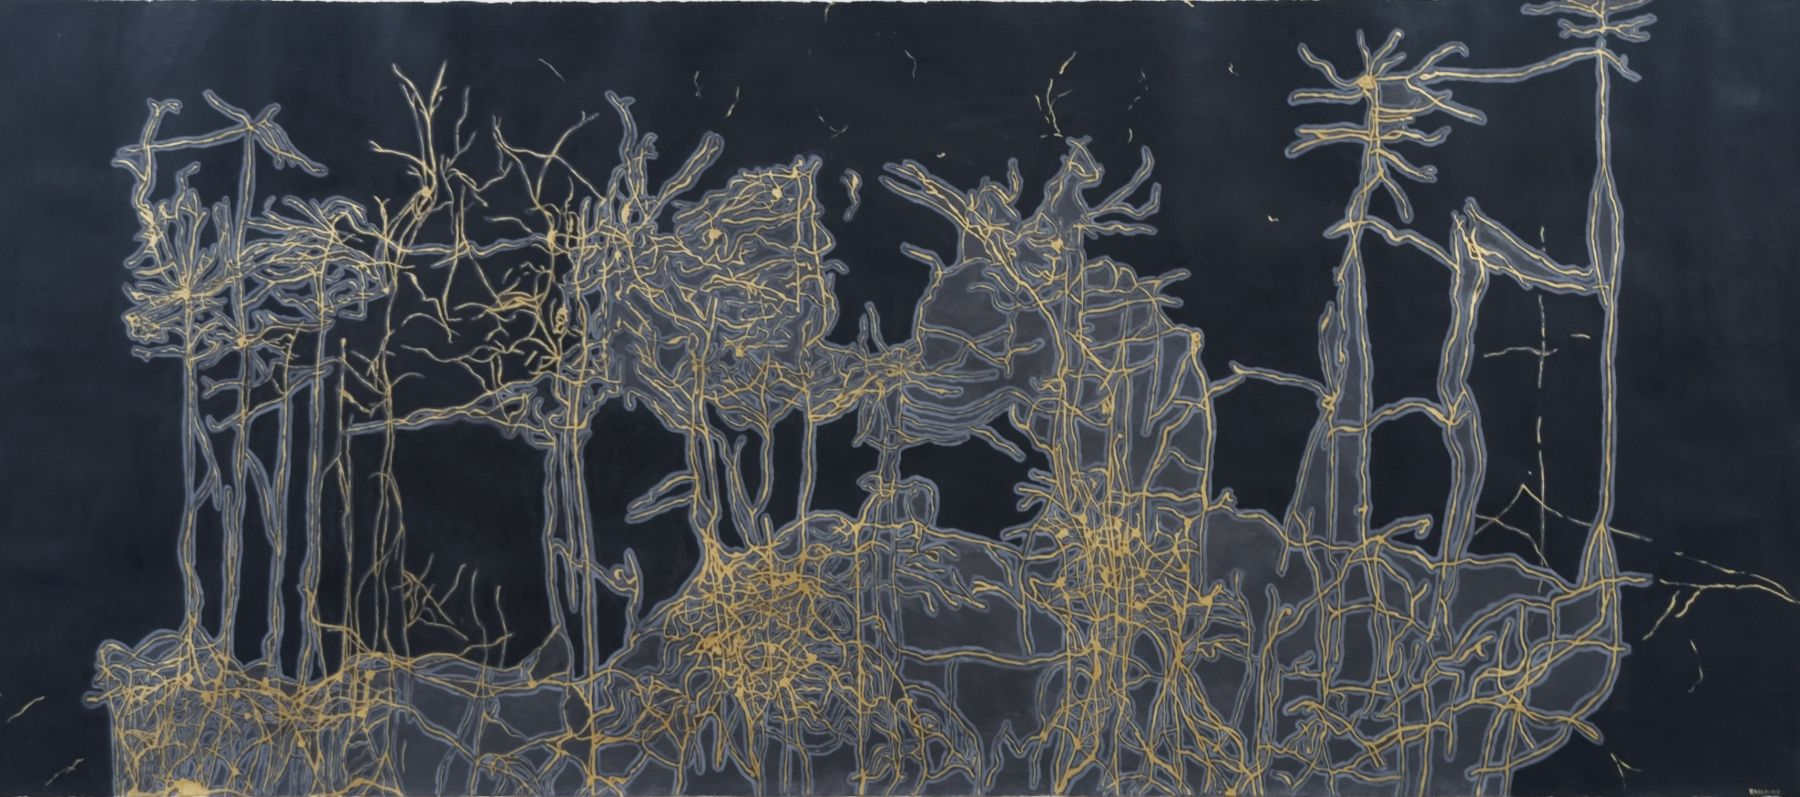 Jody Rasch, Thought - Mouse Neuron 2